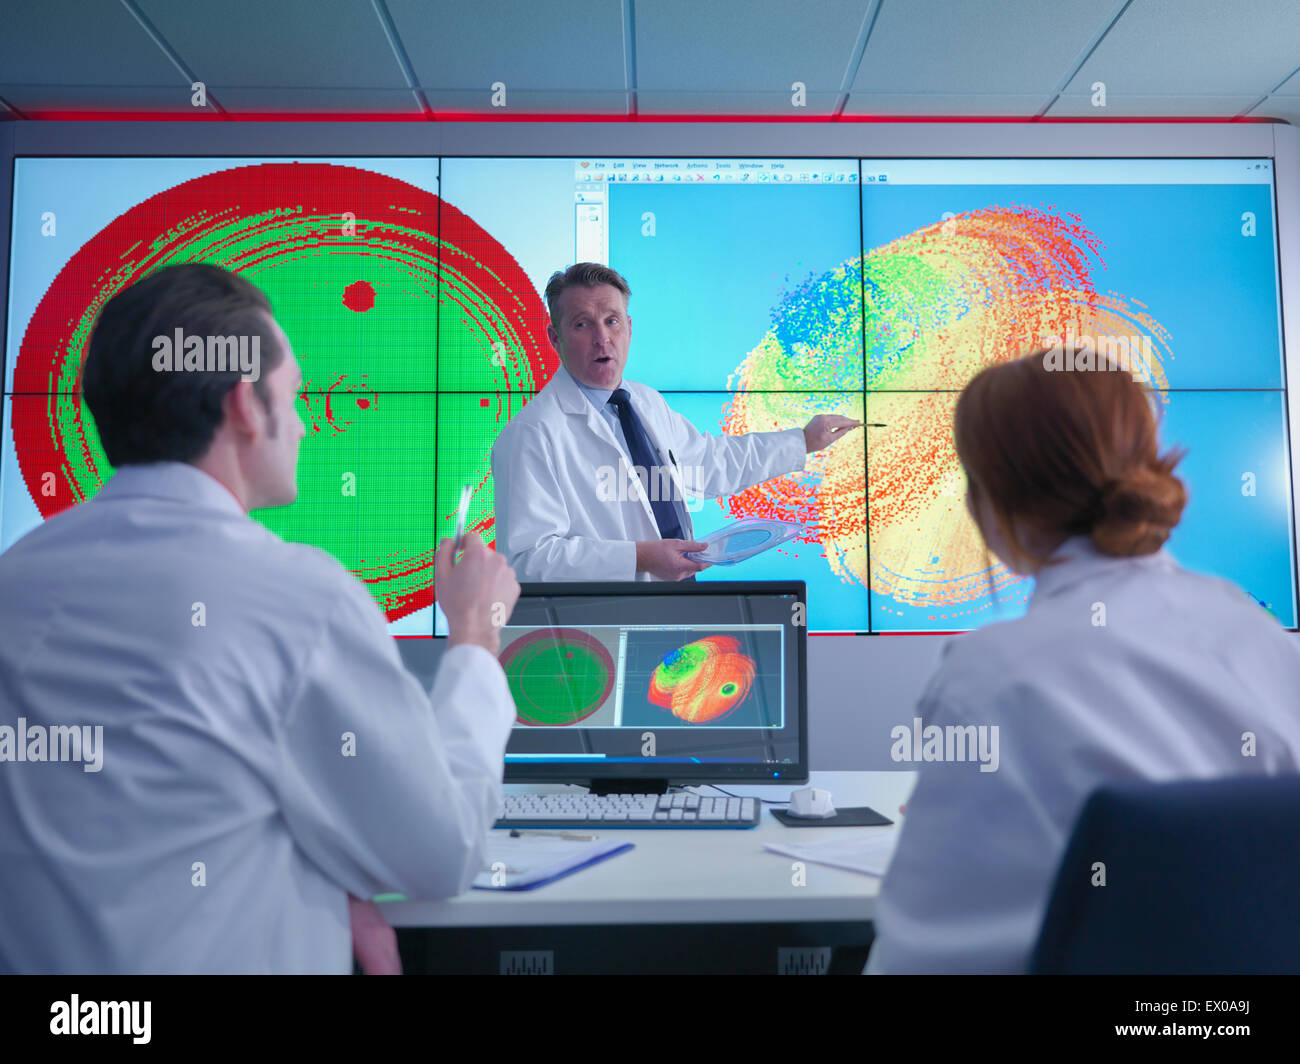 Scientists in meeting in front of graphical display of silicon wafer on screens - Stock Image